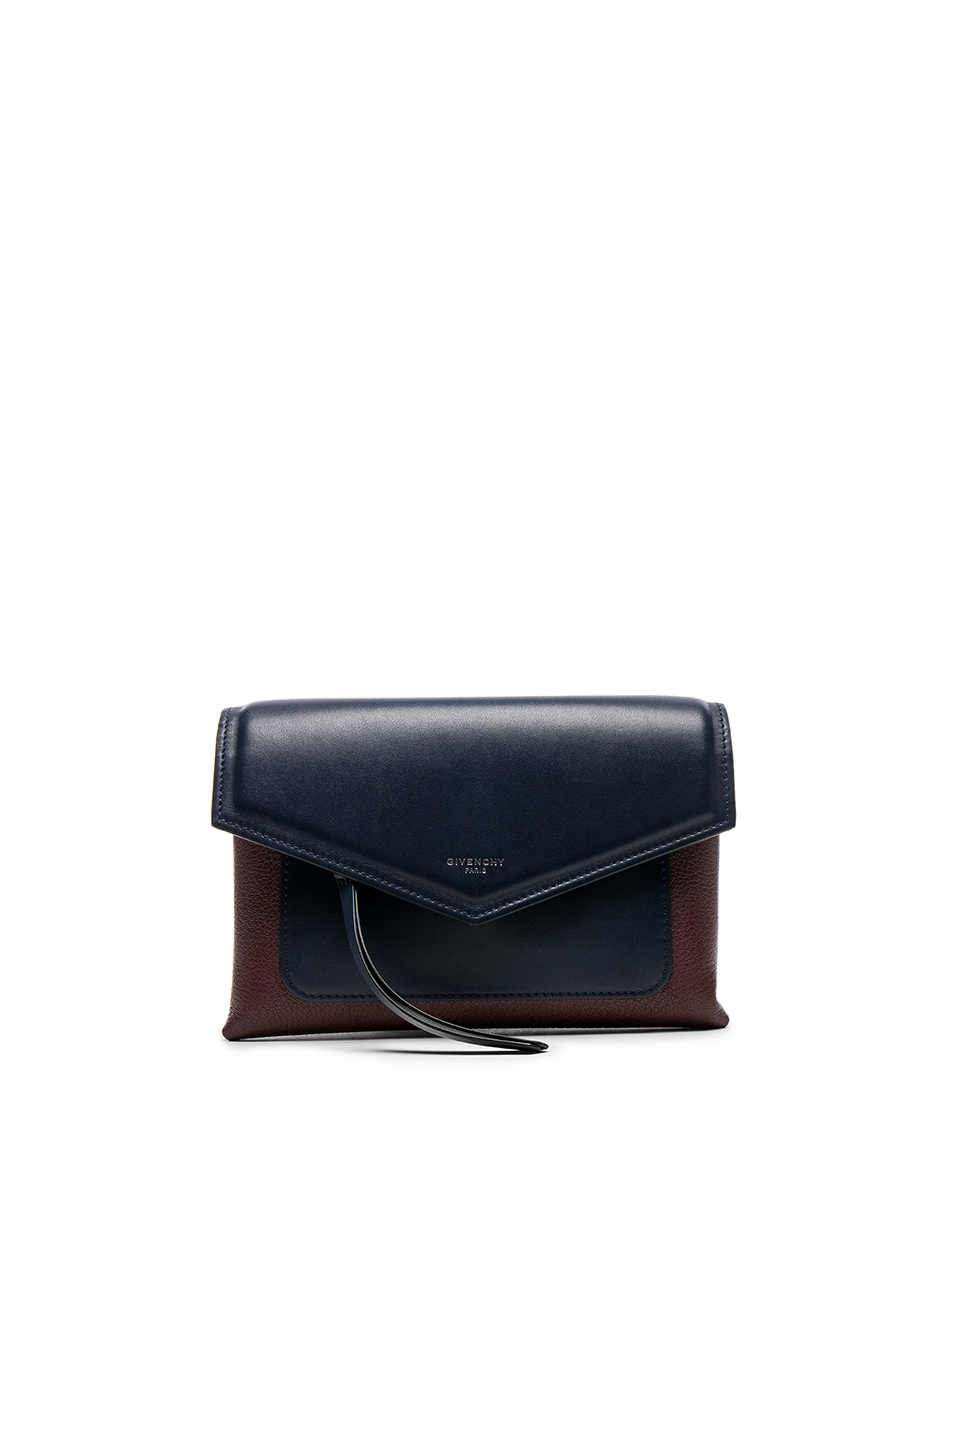 Image 1 of Givenchy Tri Color Duetto Crossbody Flap Bag in Burgundy & Navy